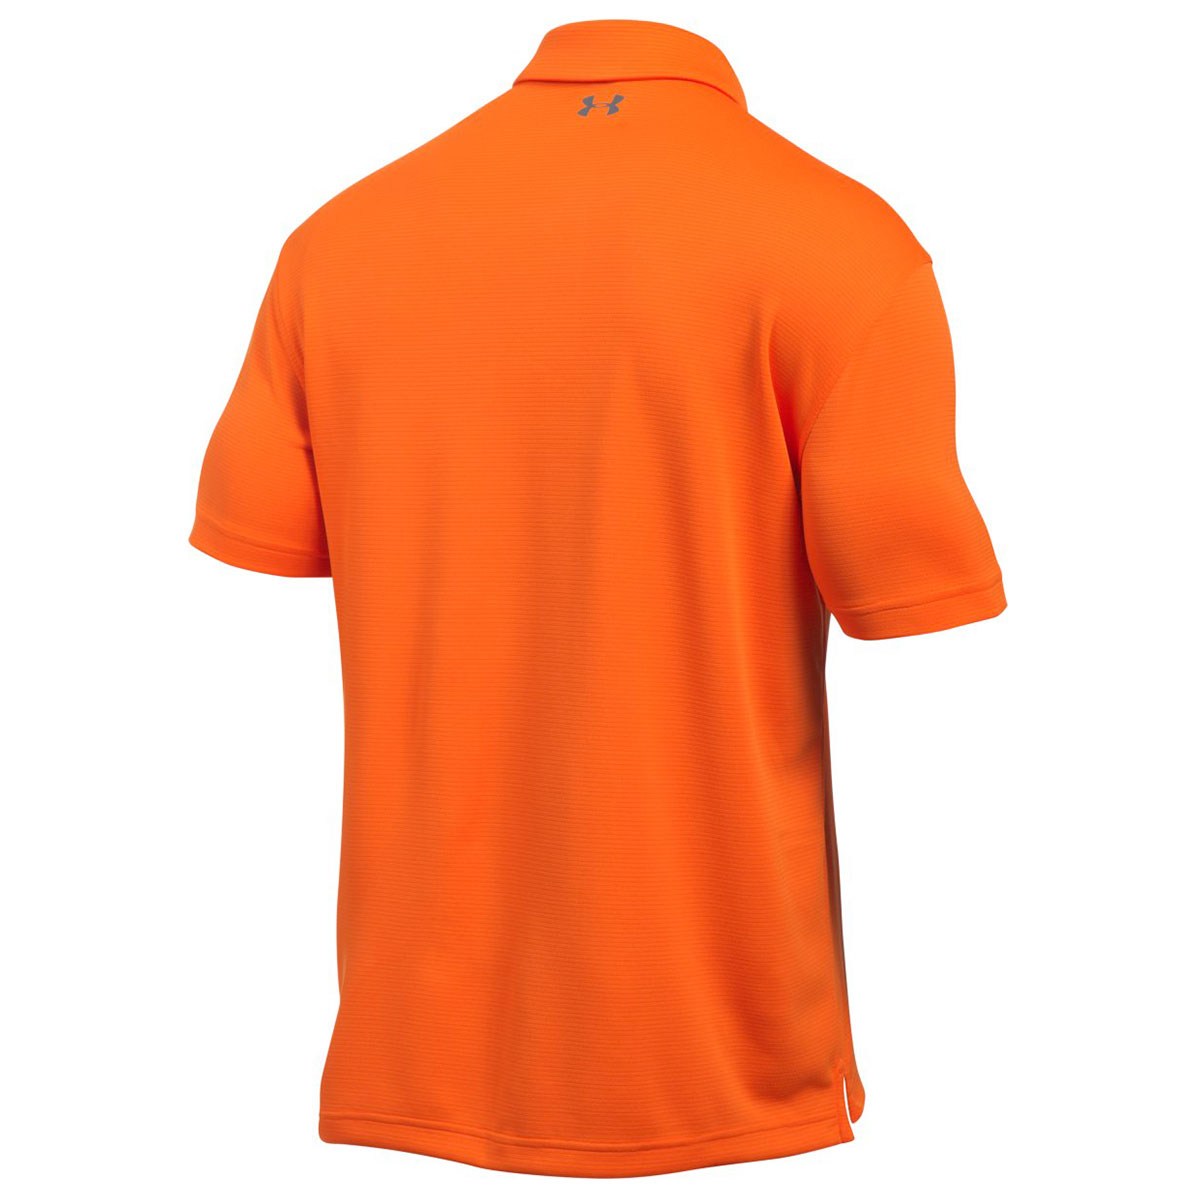 Under-Armour-Mens-2019-Golf-Tech-Wicking-Textured-Soft-Light-Polo-Shirt thumbnail 81